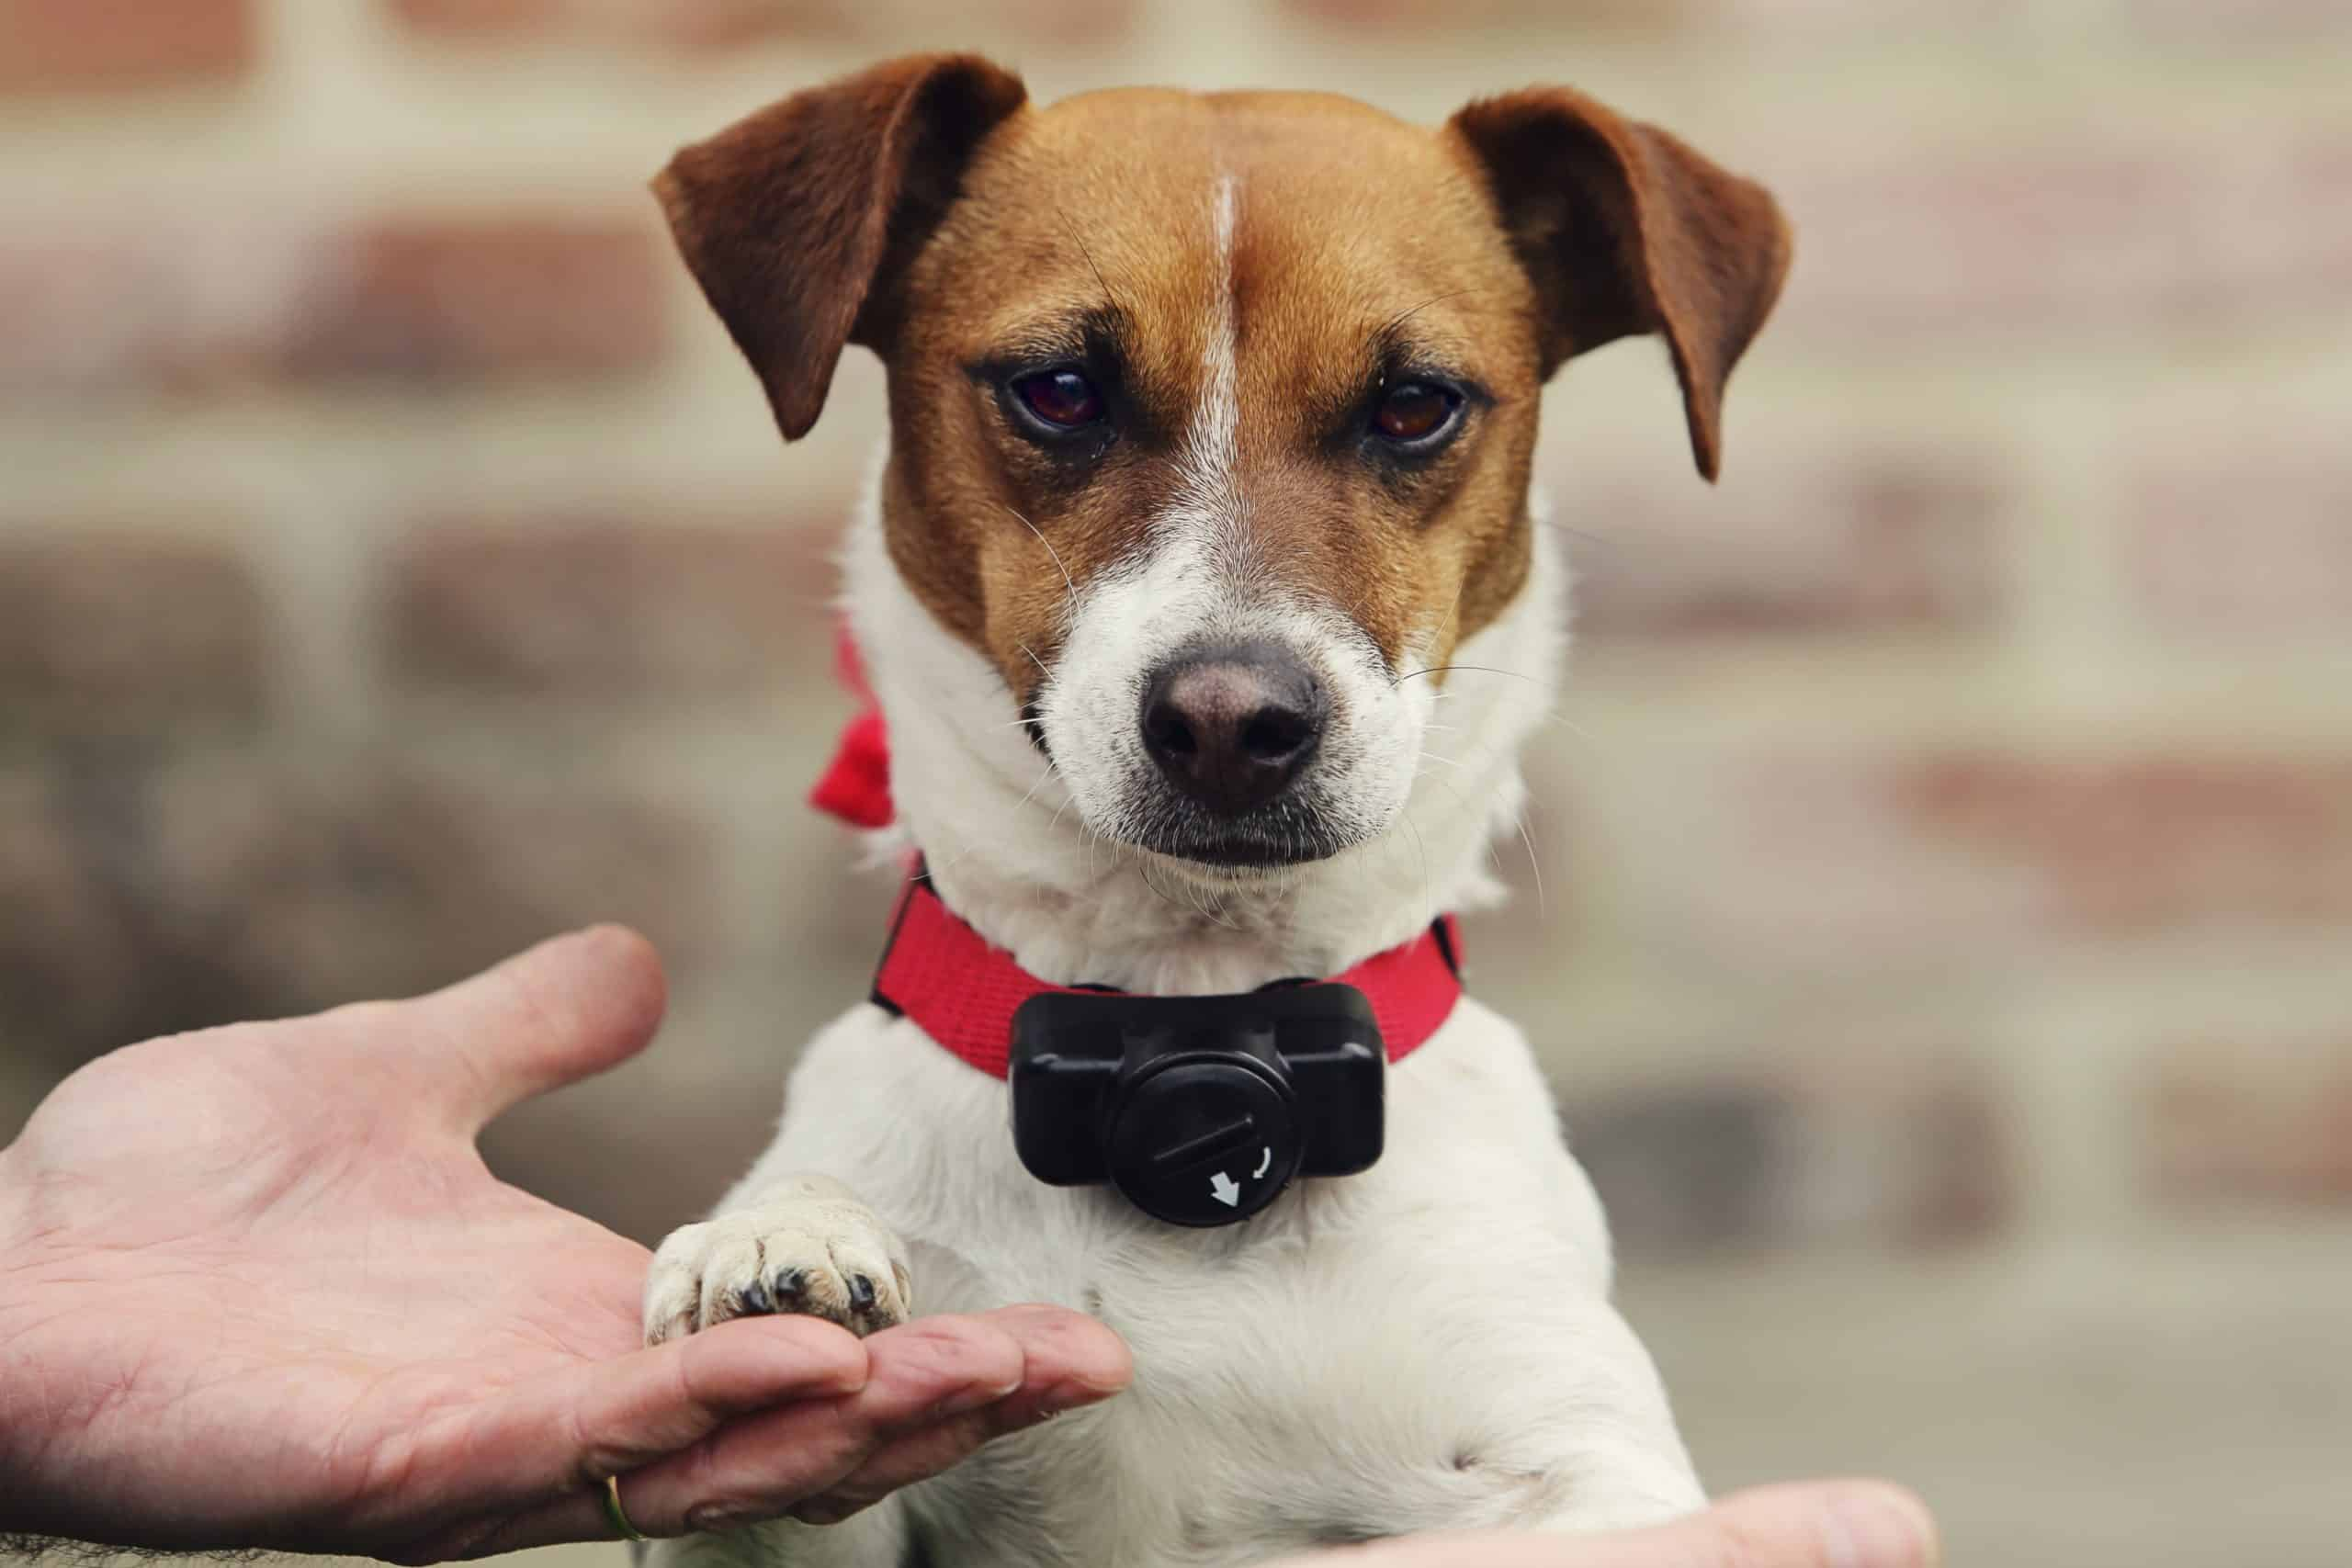 Jack Russell terrier wears collar for a wireless electric dog fence.